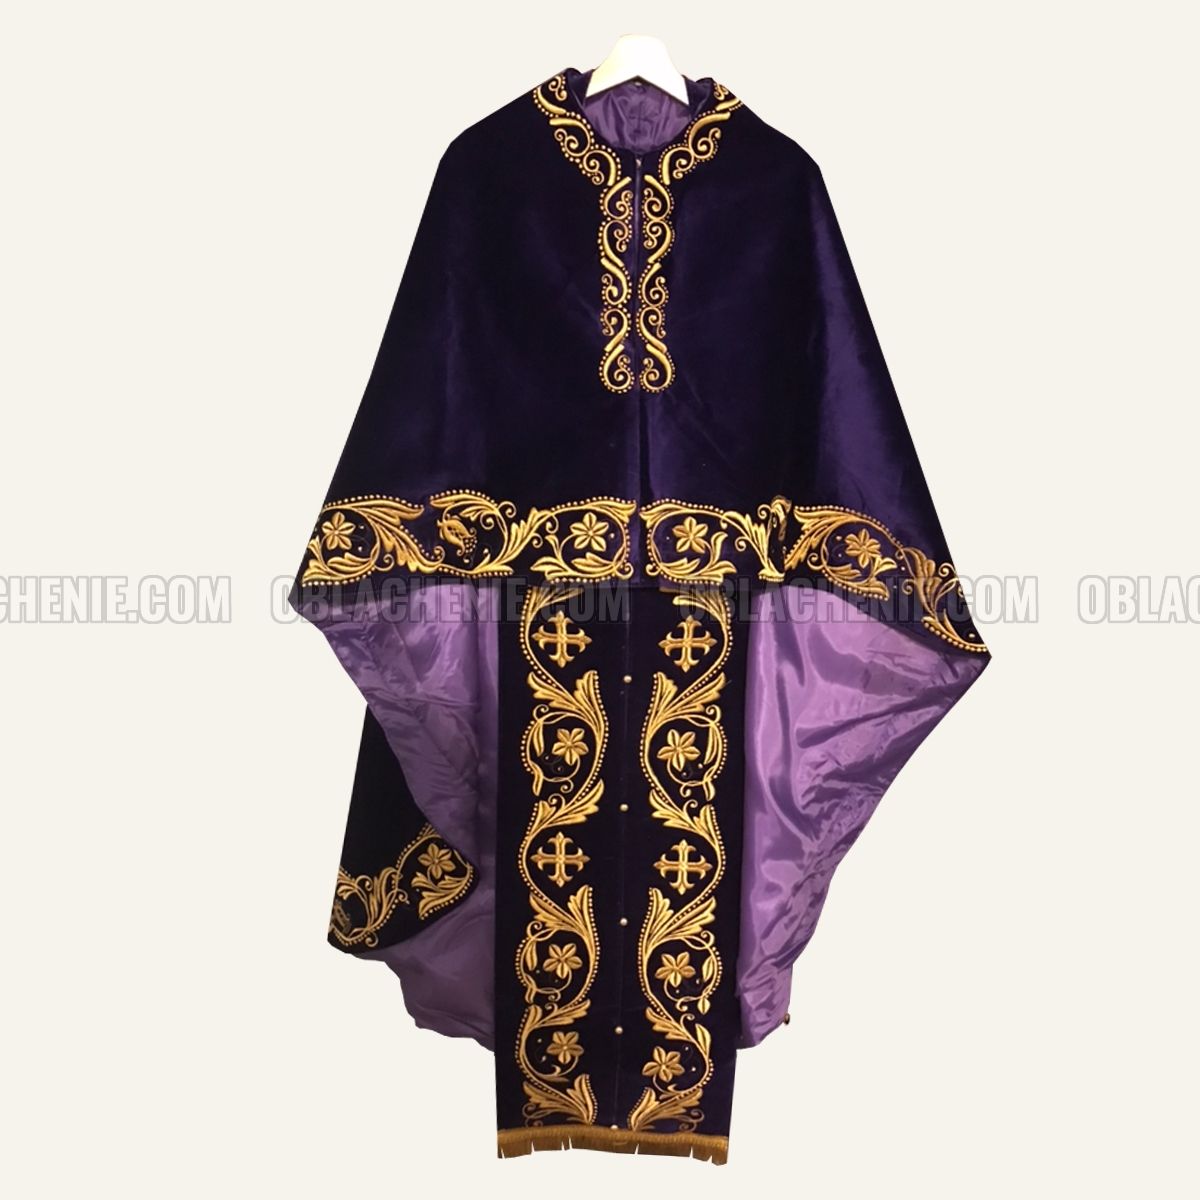 Embroidered priest's vestments 10207